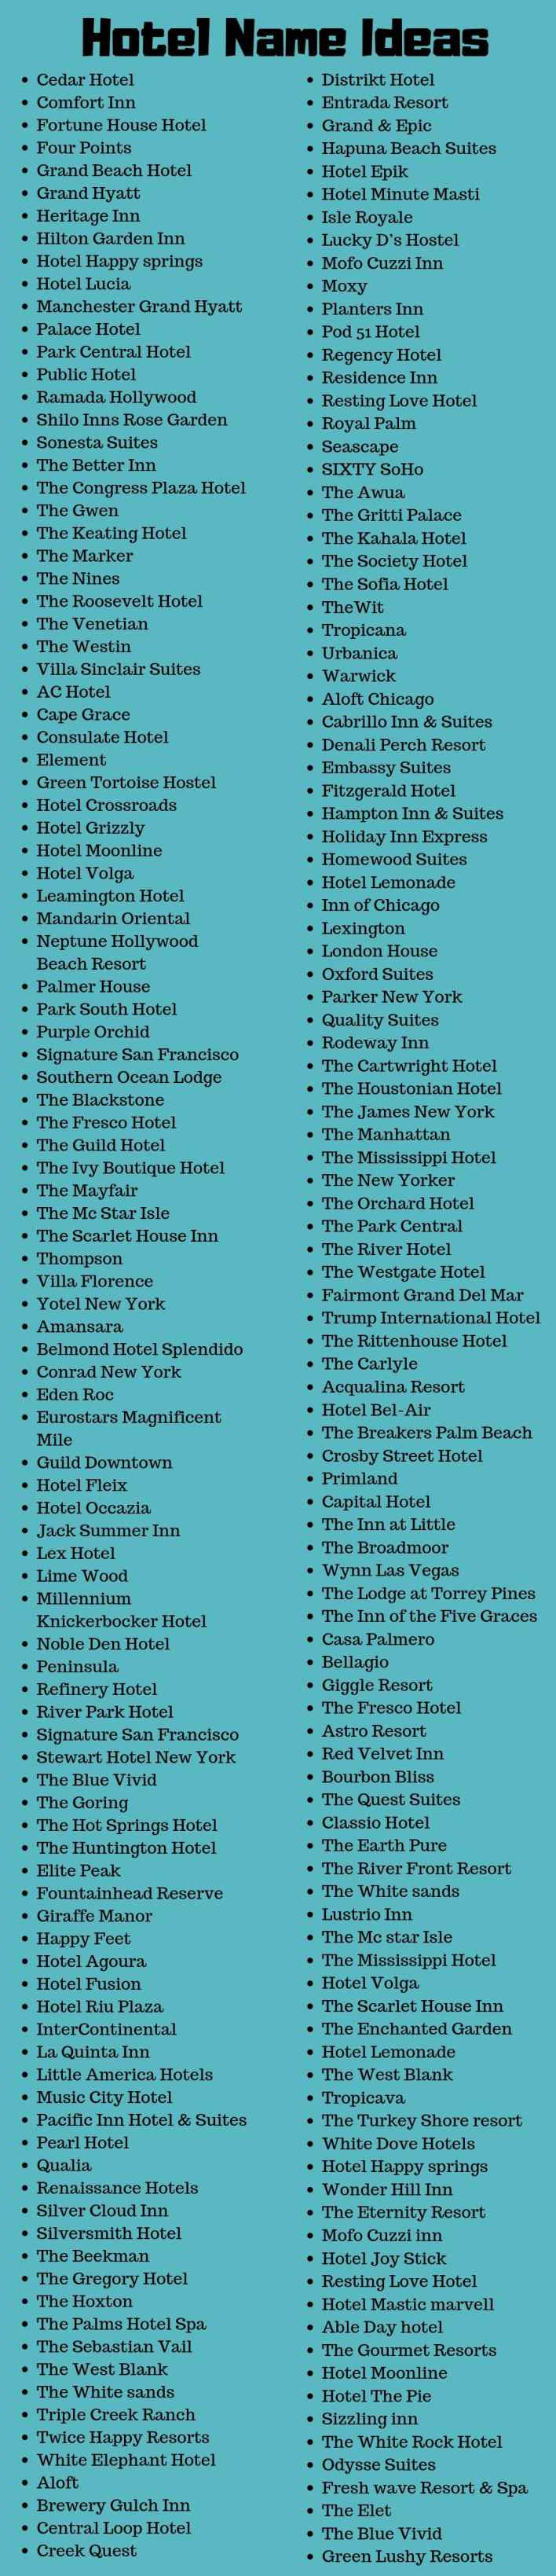 Hotel Names 400 Cool And Creative Hotel Name Ideas